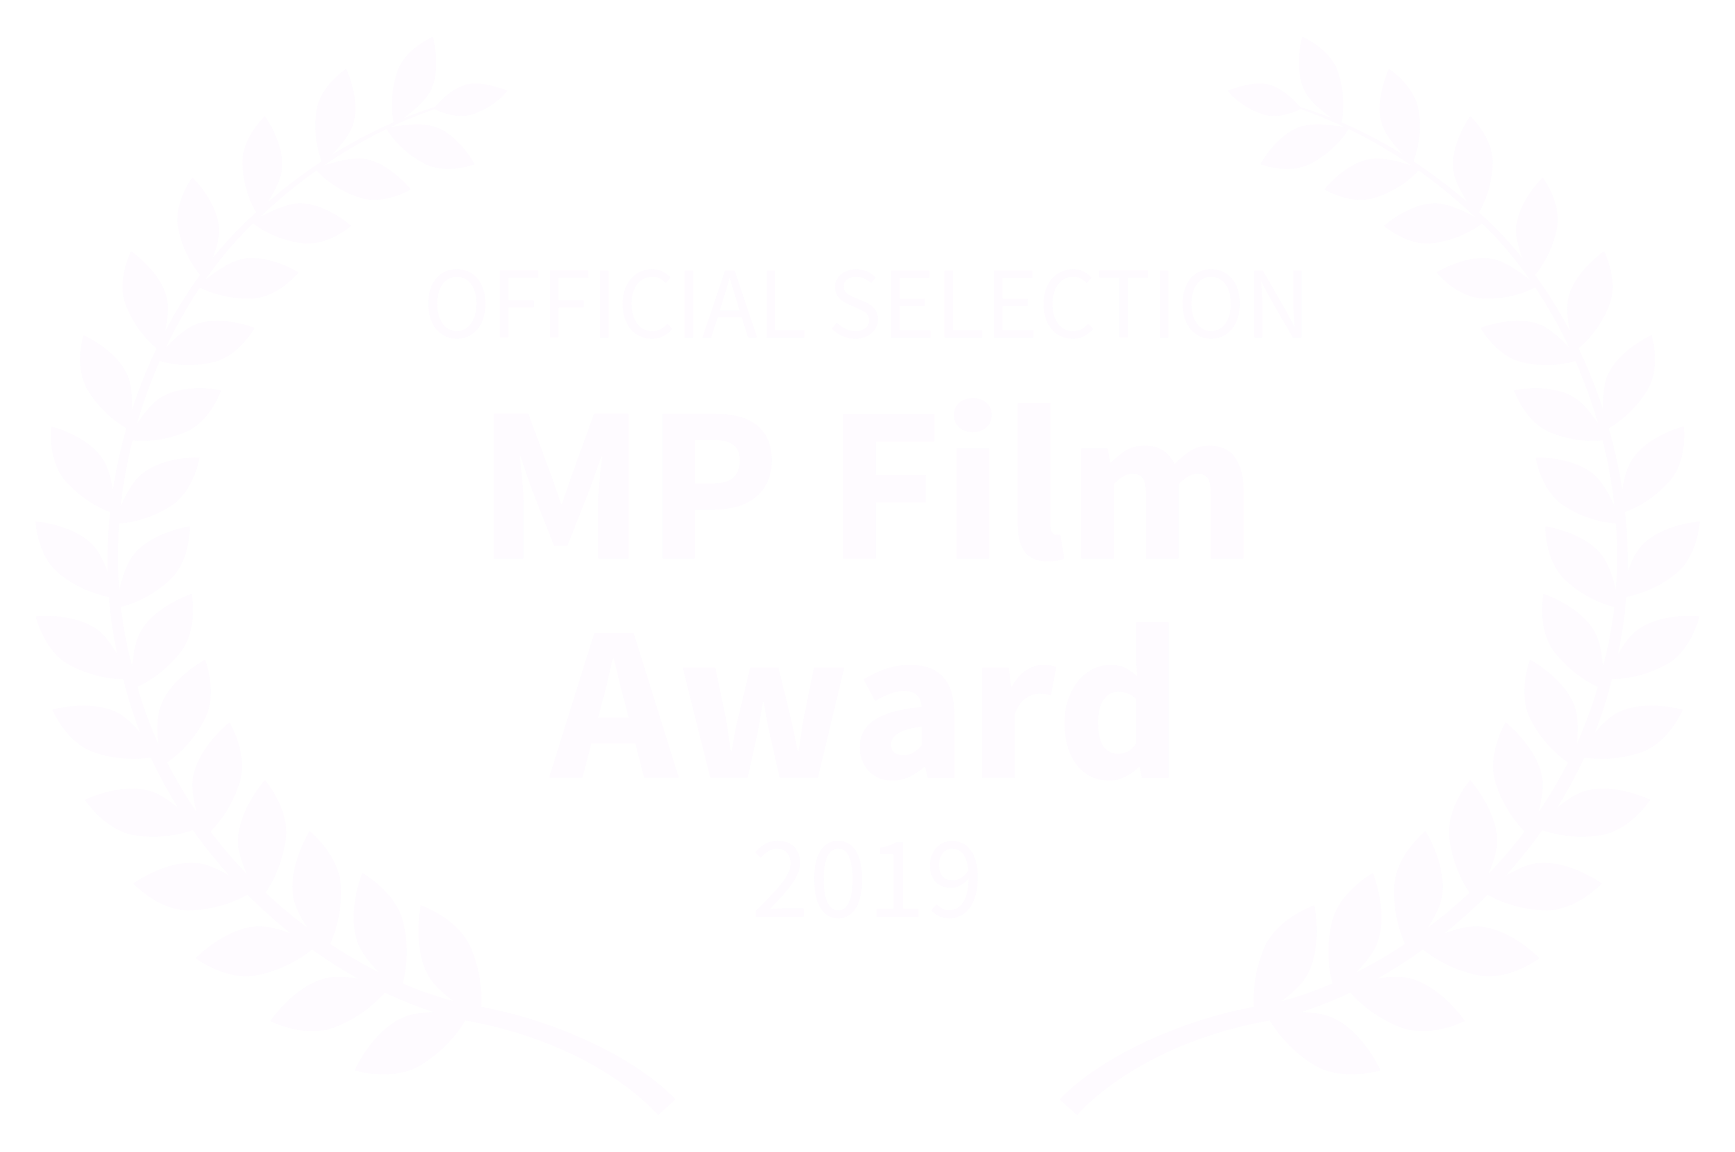 OFFICIAL SELECTION - MP Film Award - 2019 copy.png